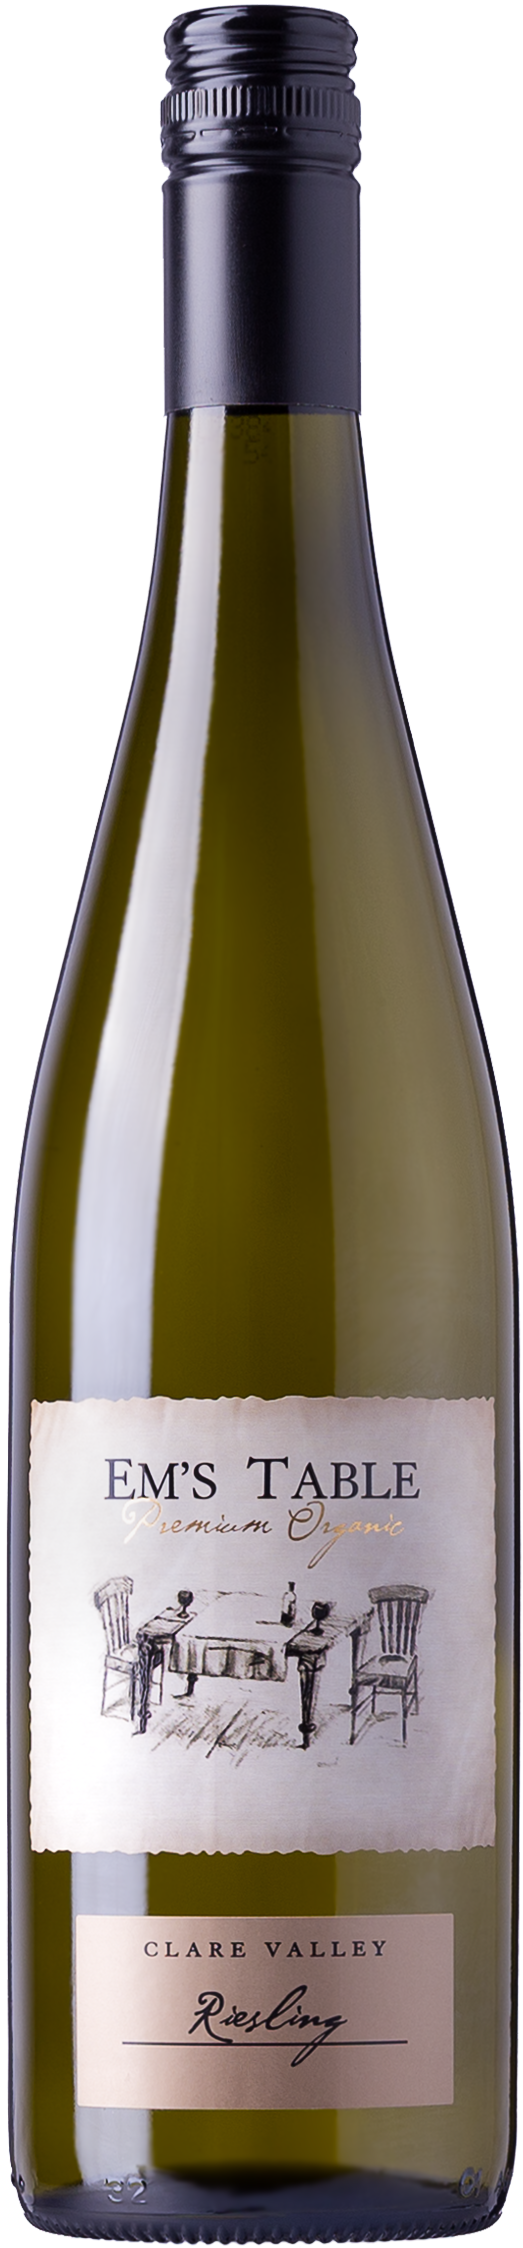 Em's Table Organic 'Late Harvest' Riesling 2016-0